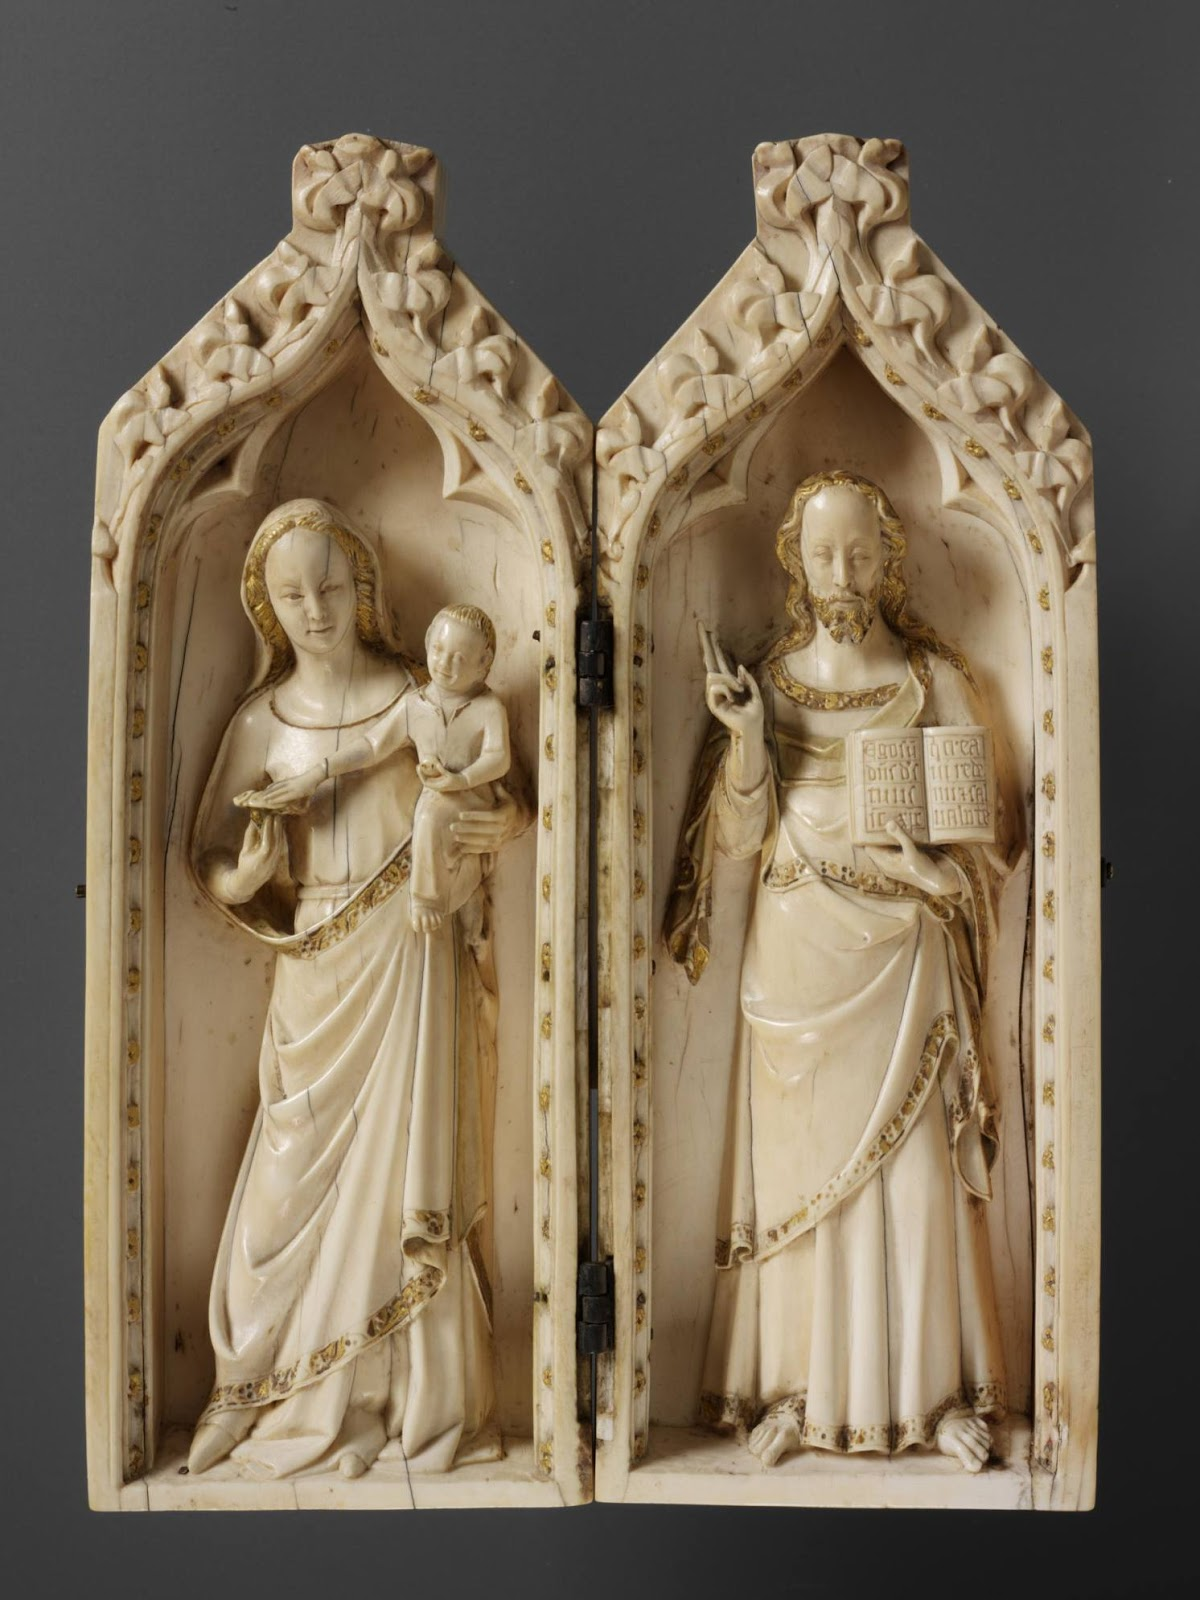 1310-20 Salting-Diptych-Virgin-Christ-ivory-VetA-Westminster